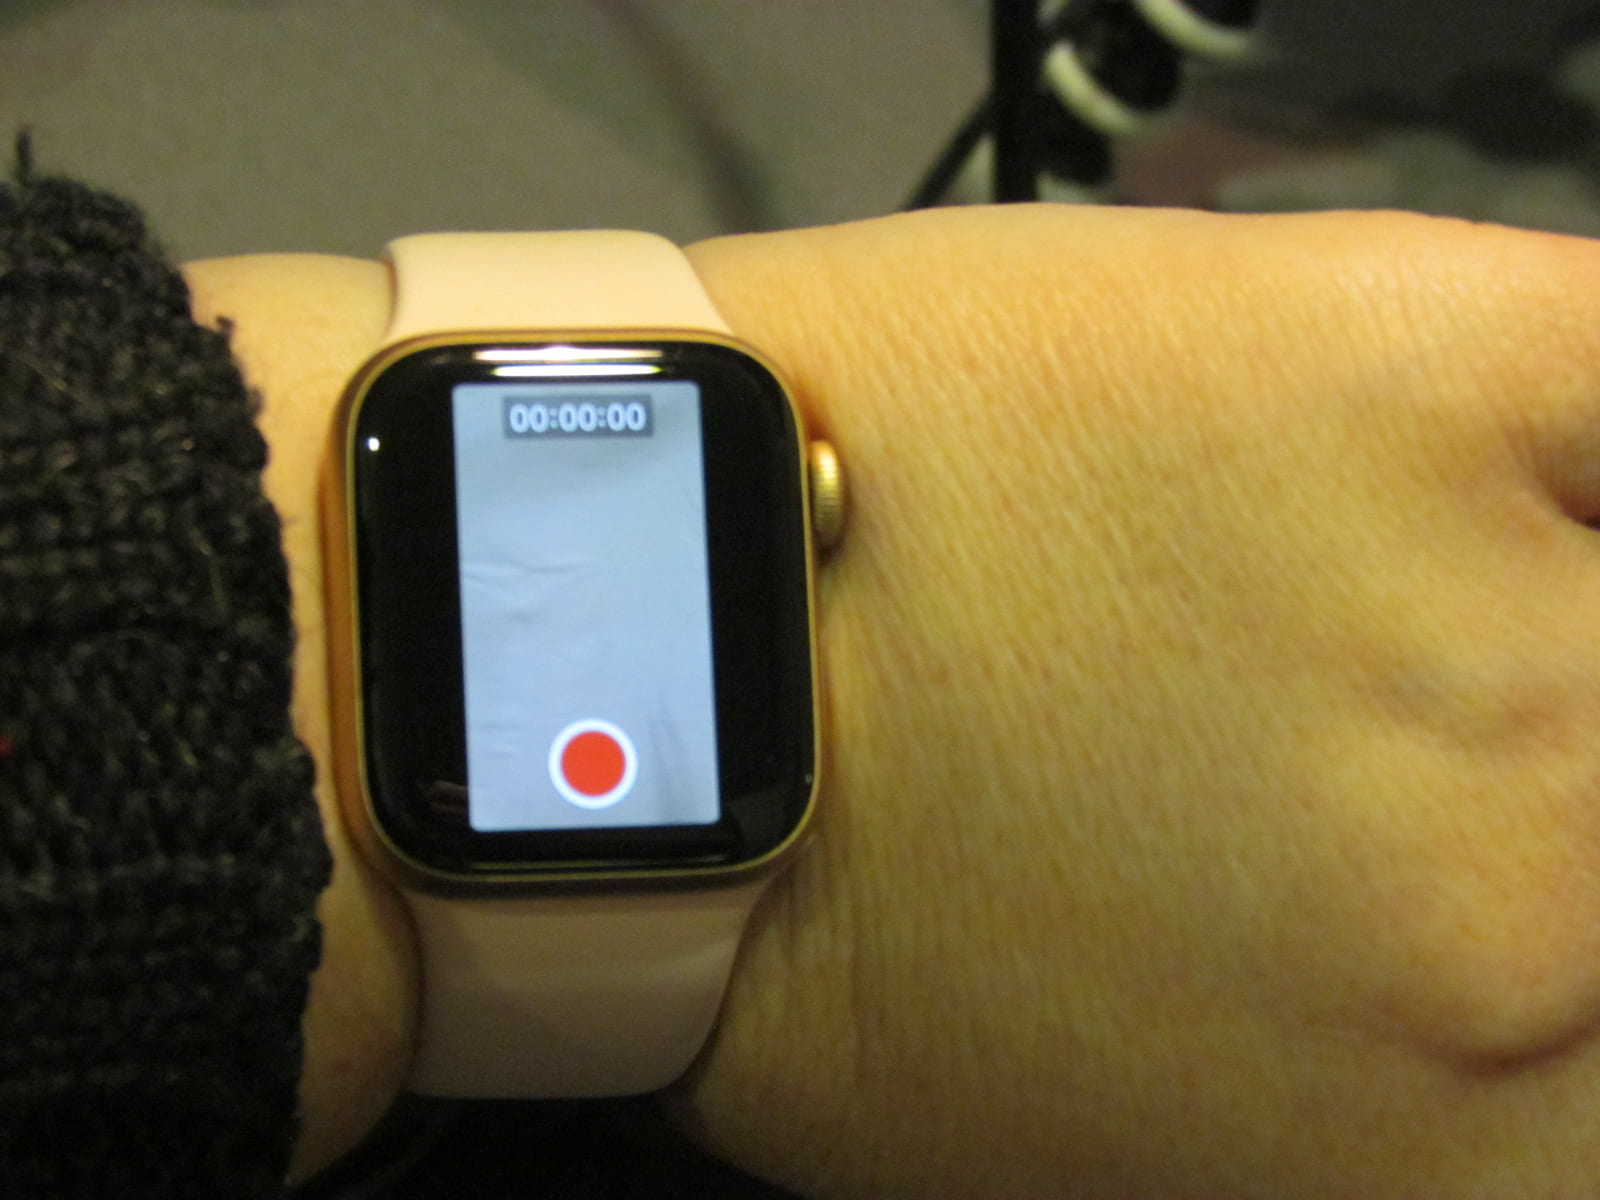 Apple Watch controlling the camera